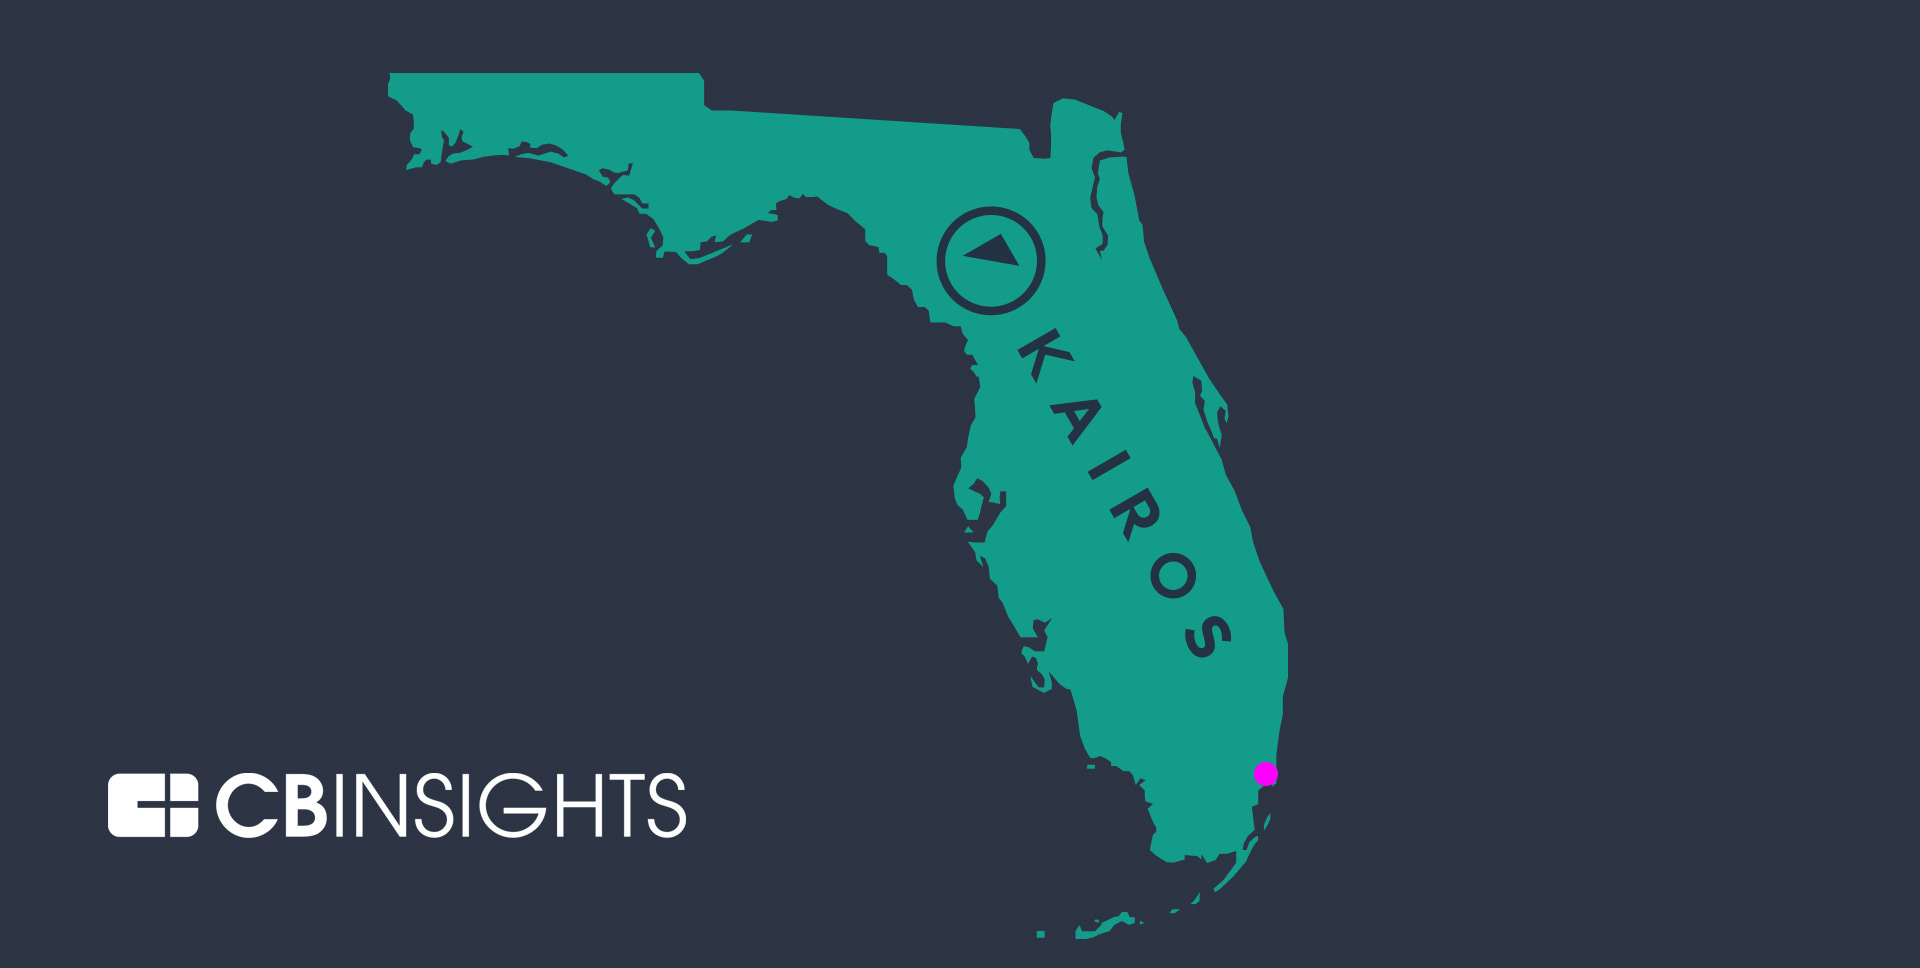 Illustrated map of Florida with the Kairos corporate logo overlaid